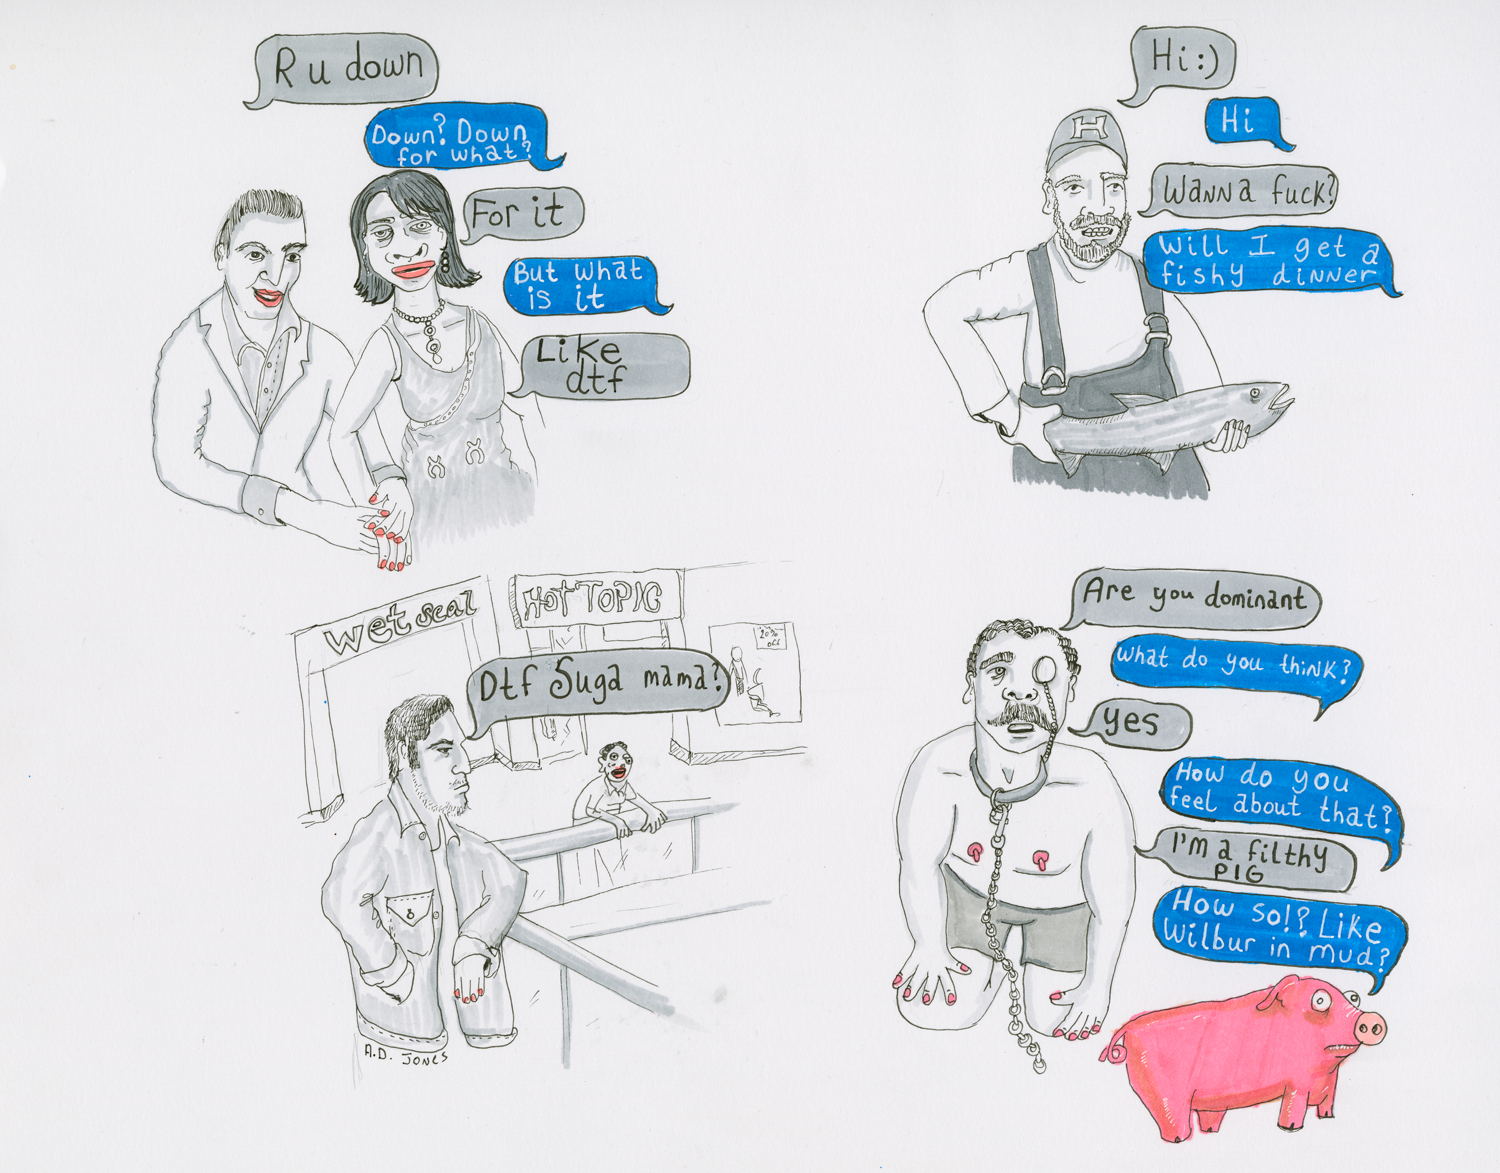 The Artist Turning Bad Tinder Matches Into Great Drawings